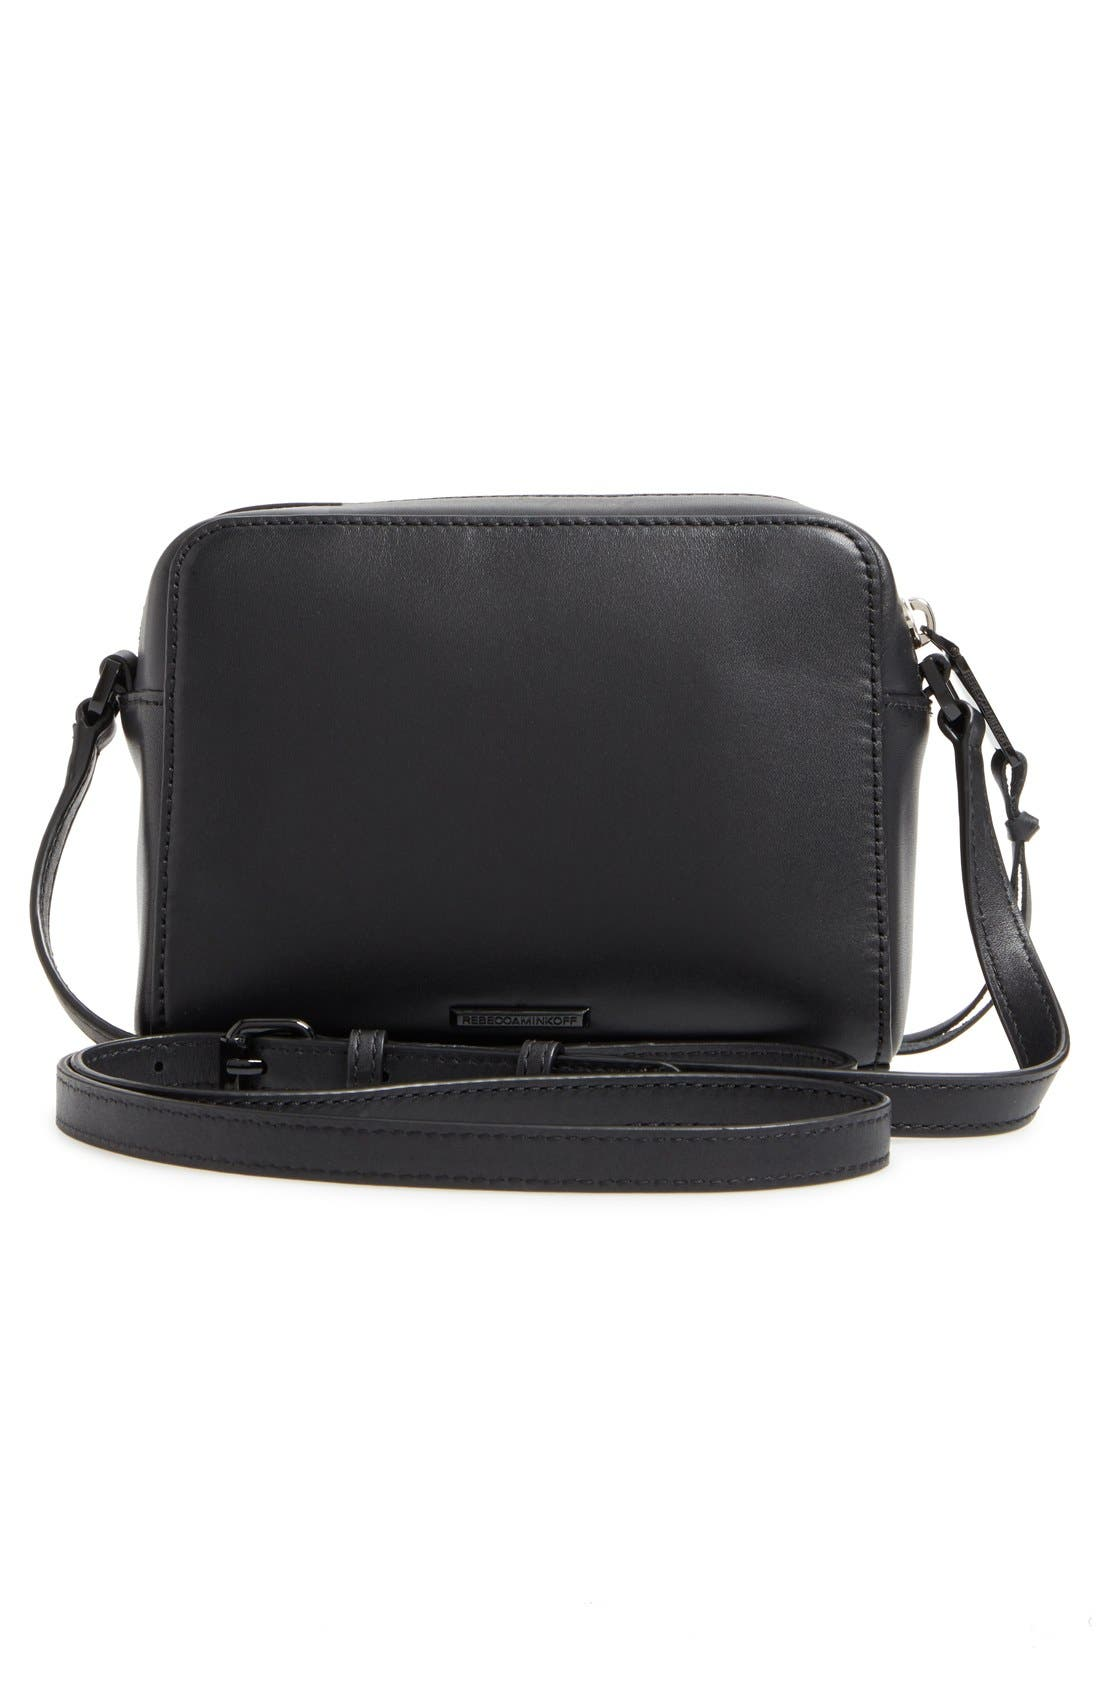 Alternate Image 3  - Rebecca Minkoff 'Mini Sofia' Crossbody Bag